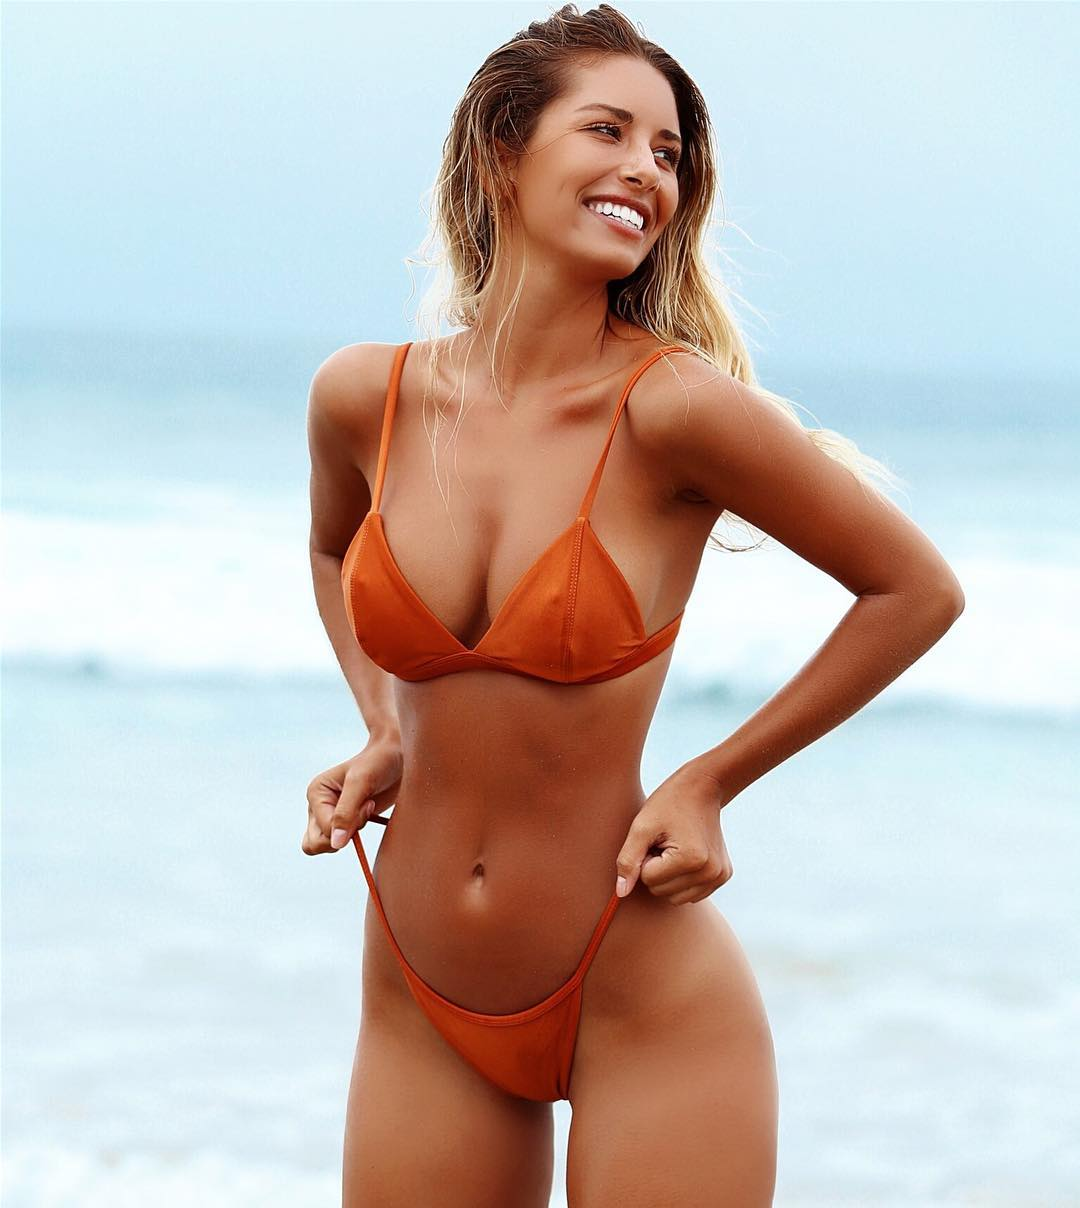 Hot Sierra Skye nude photos 2019